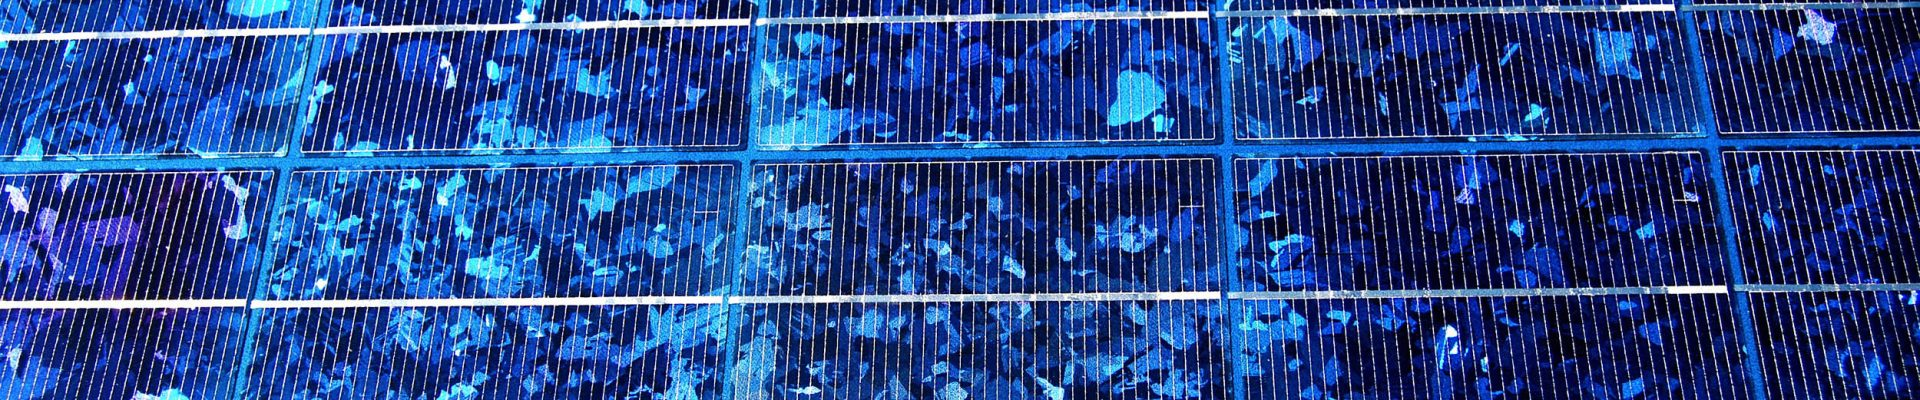 An array of solar panels collecting solar energy.